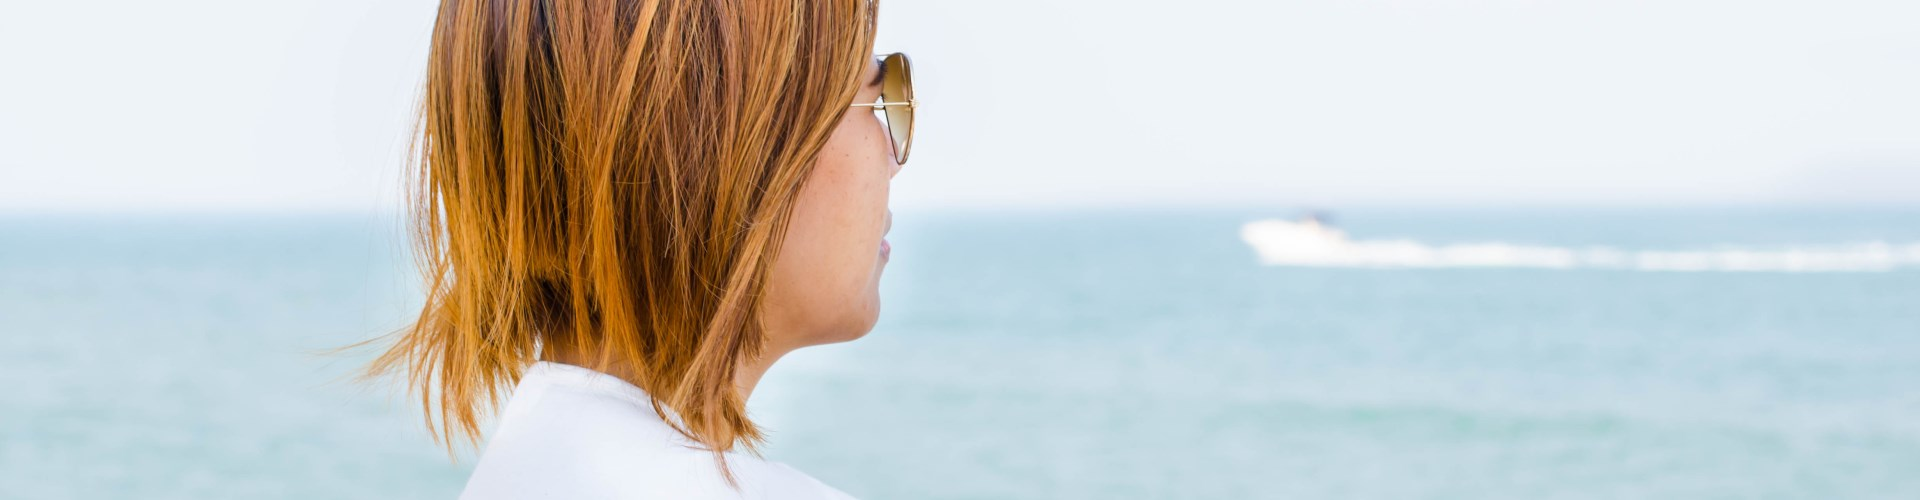 Woman looking at ocean